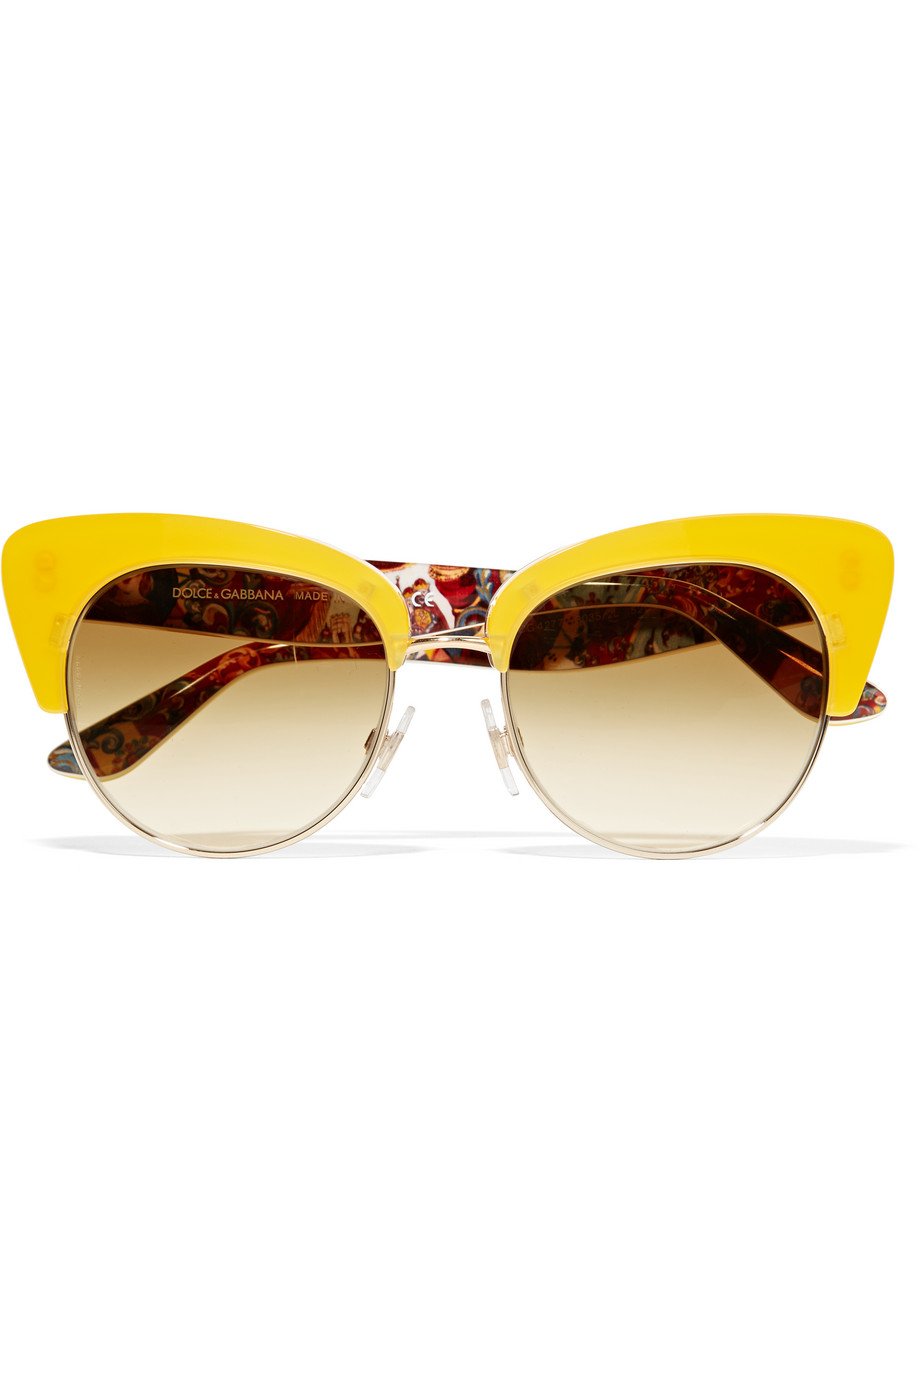 Dolce & Gabbana Cat-Eye Gold-Tone and Acetate Sunglasses, Yellow, Women's